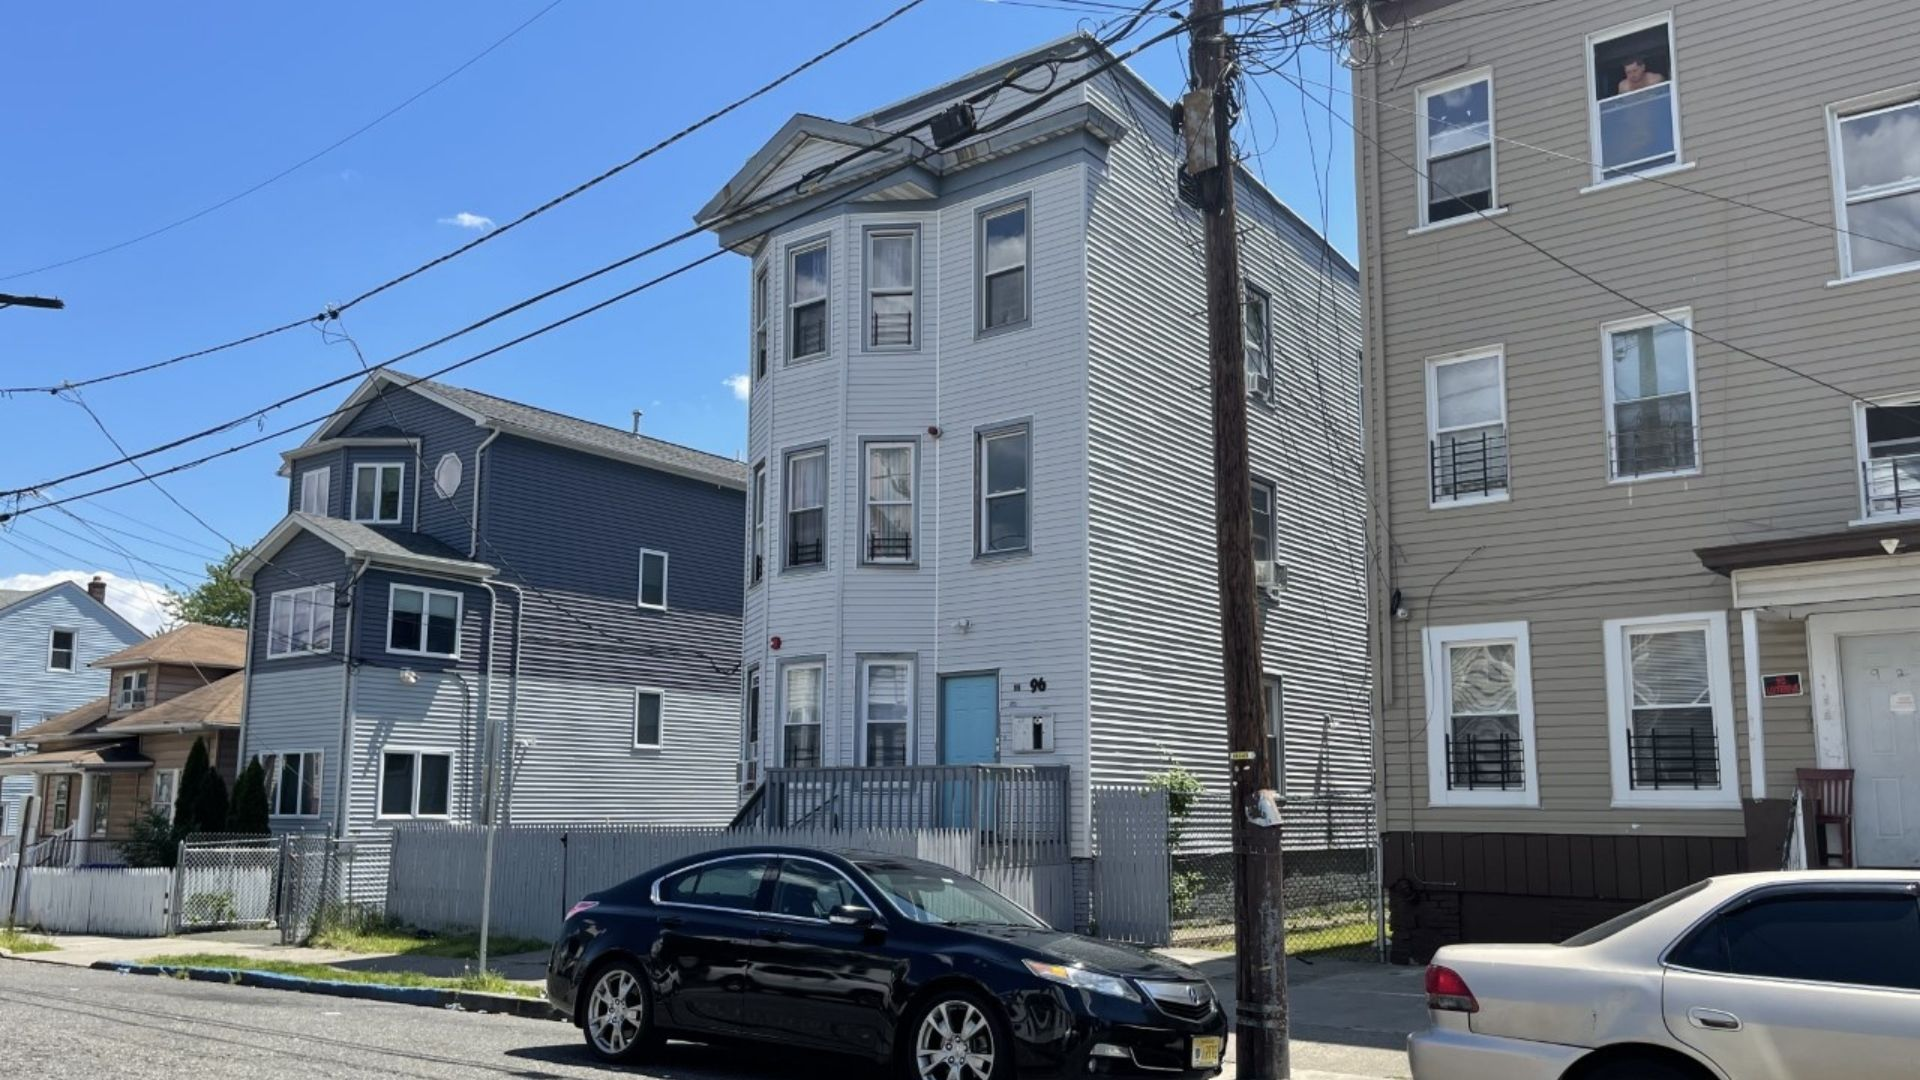 Child fatally stabbed at Paterson home